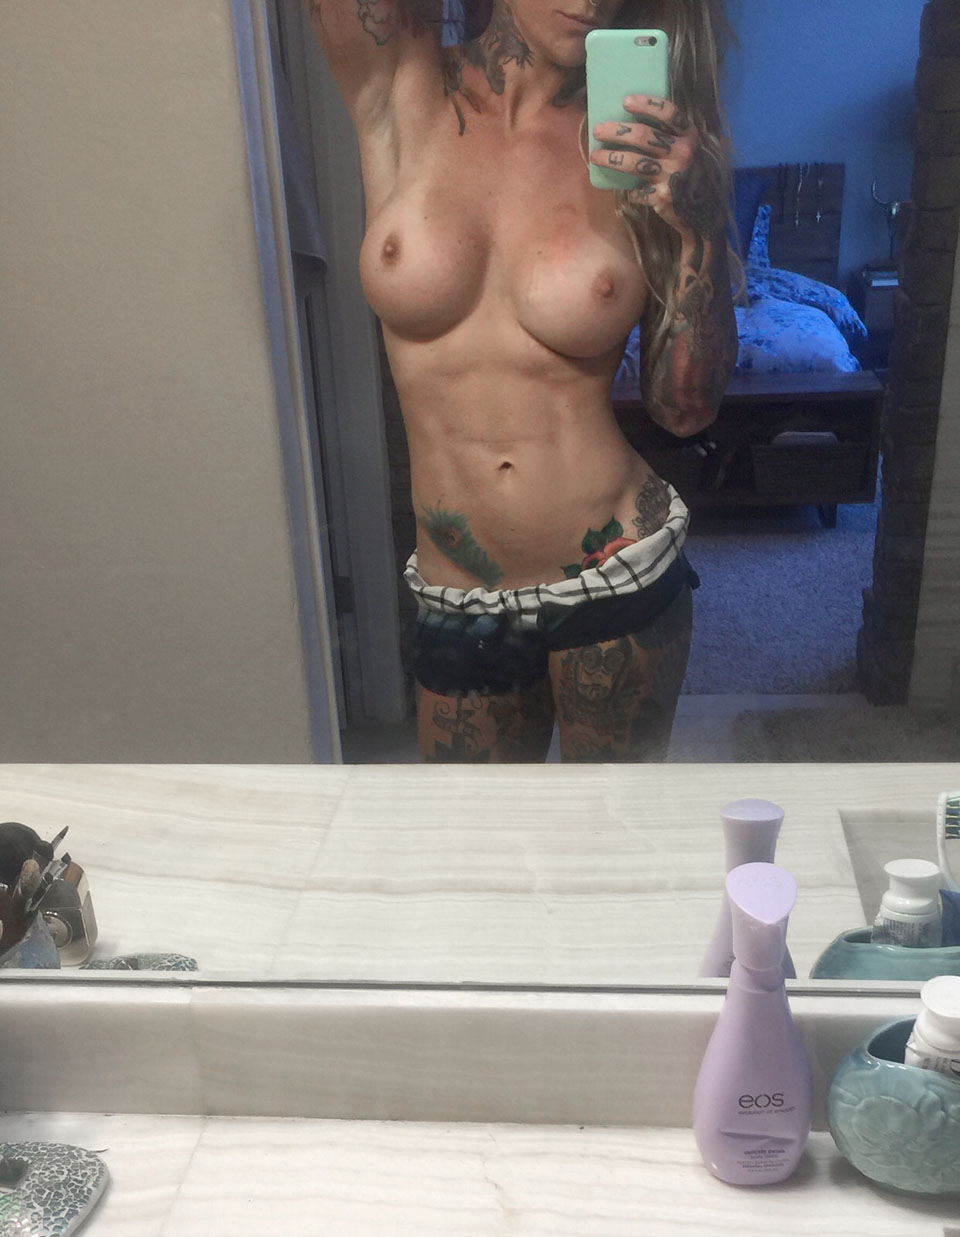 Krissy mae cagney nude selfies leaked new pics